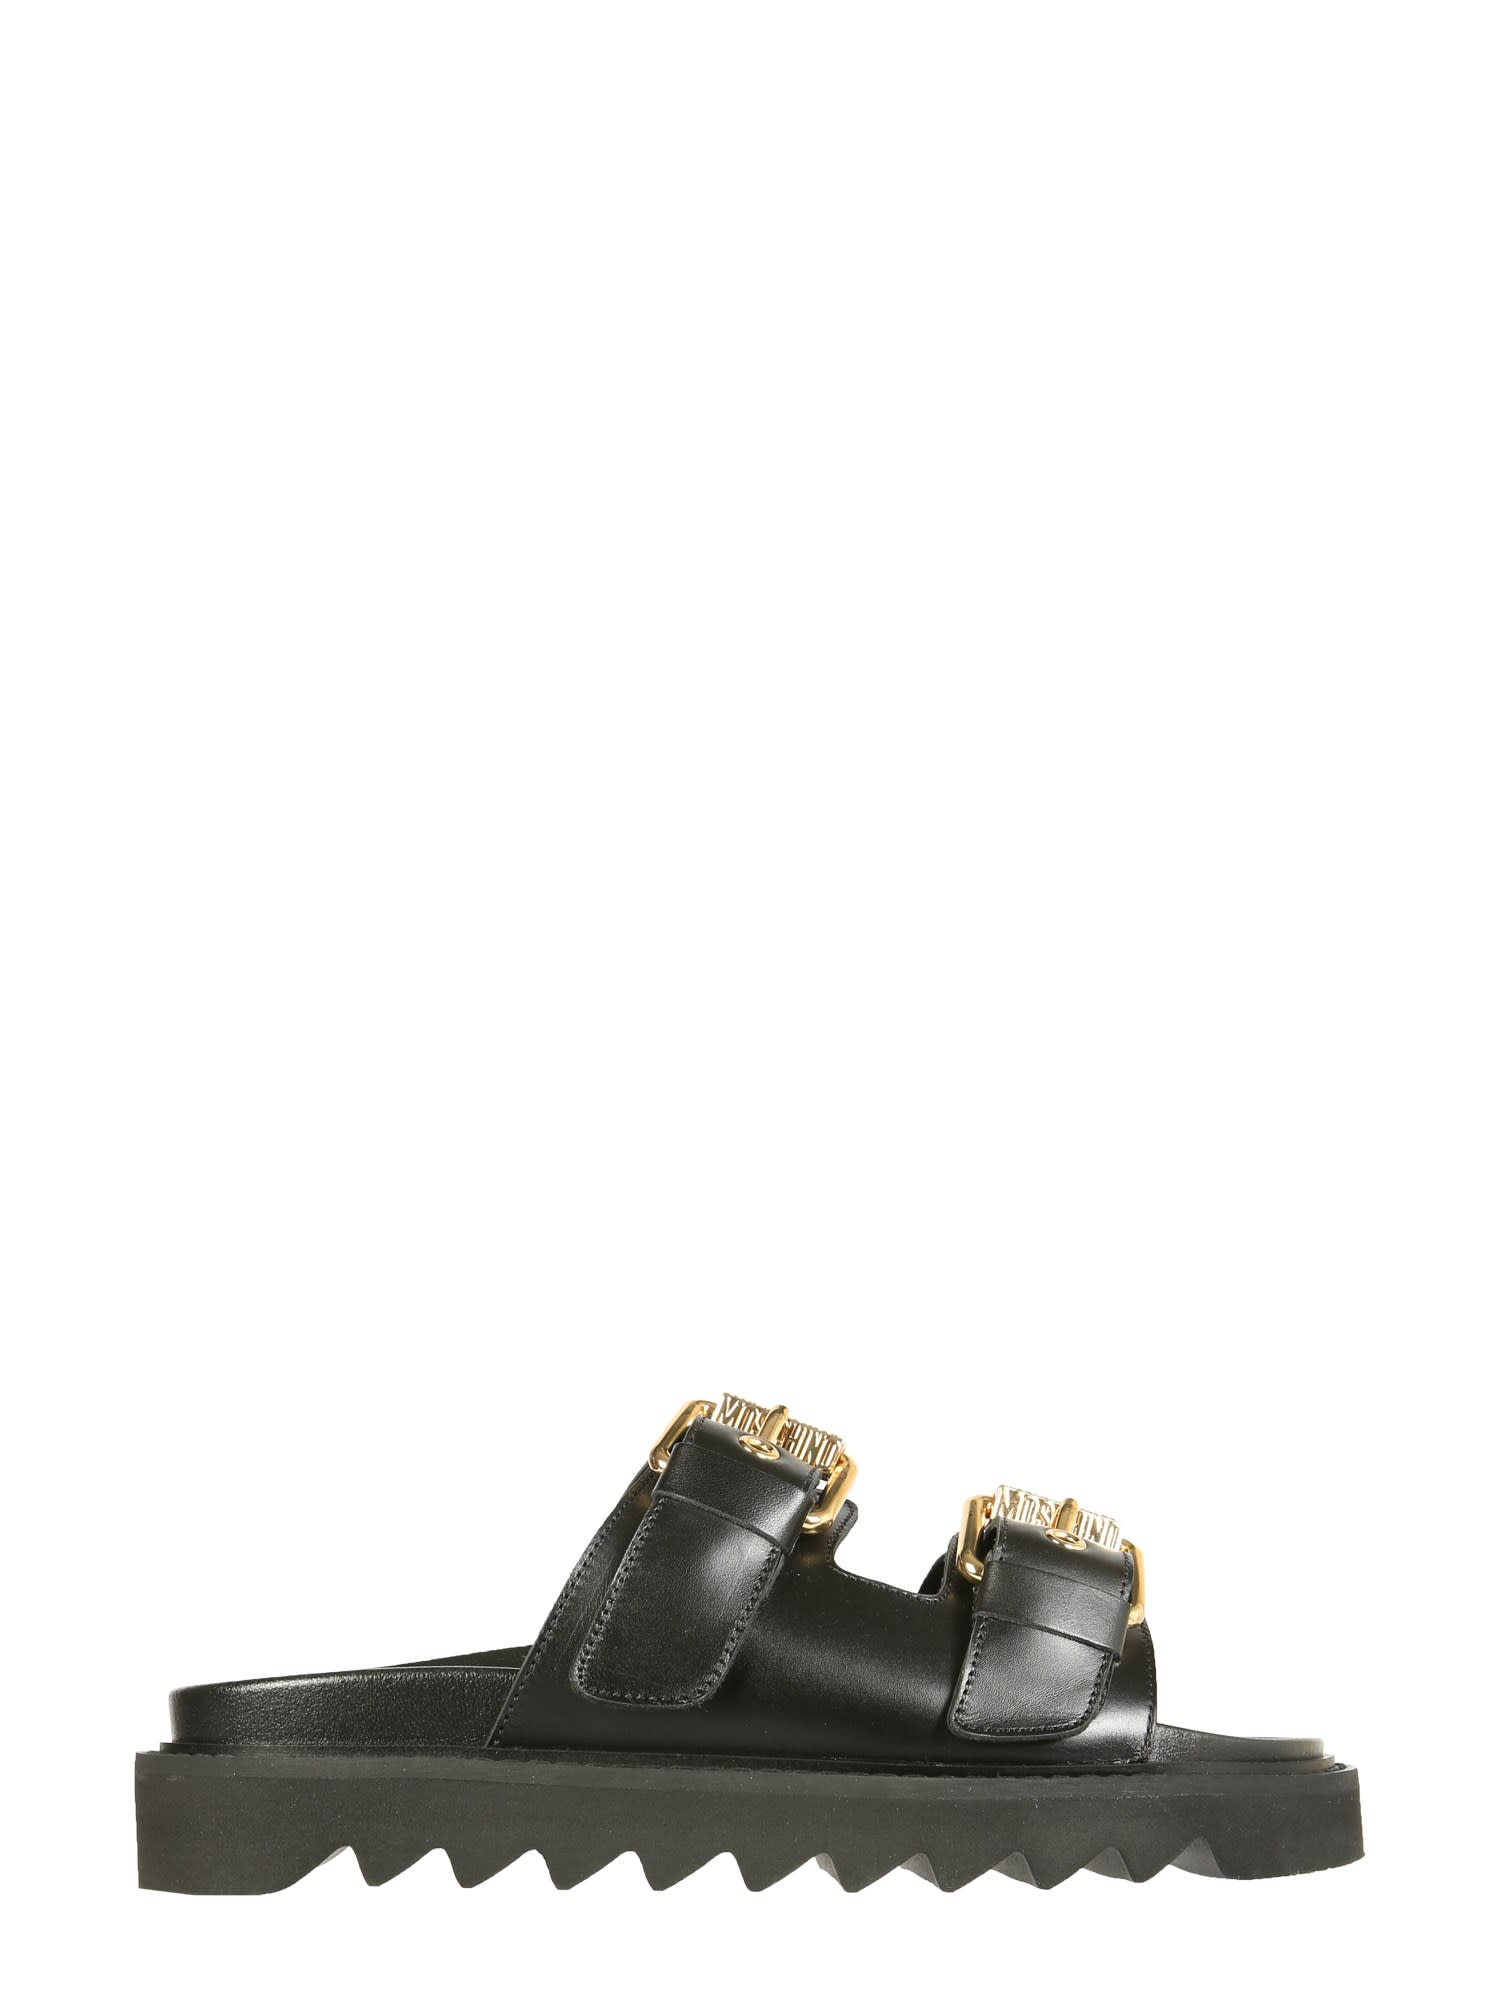 Moschino SANDALS WITH BUCKLES